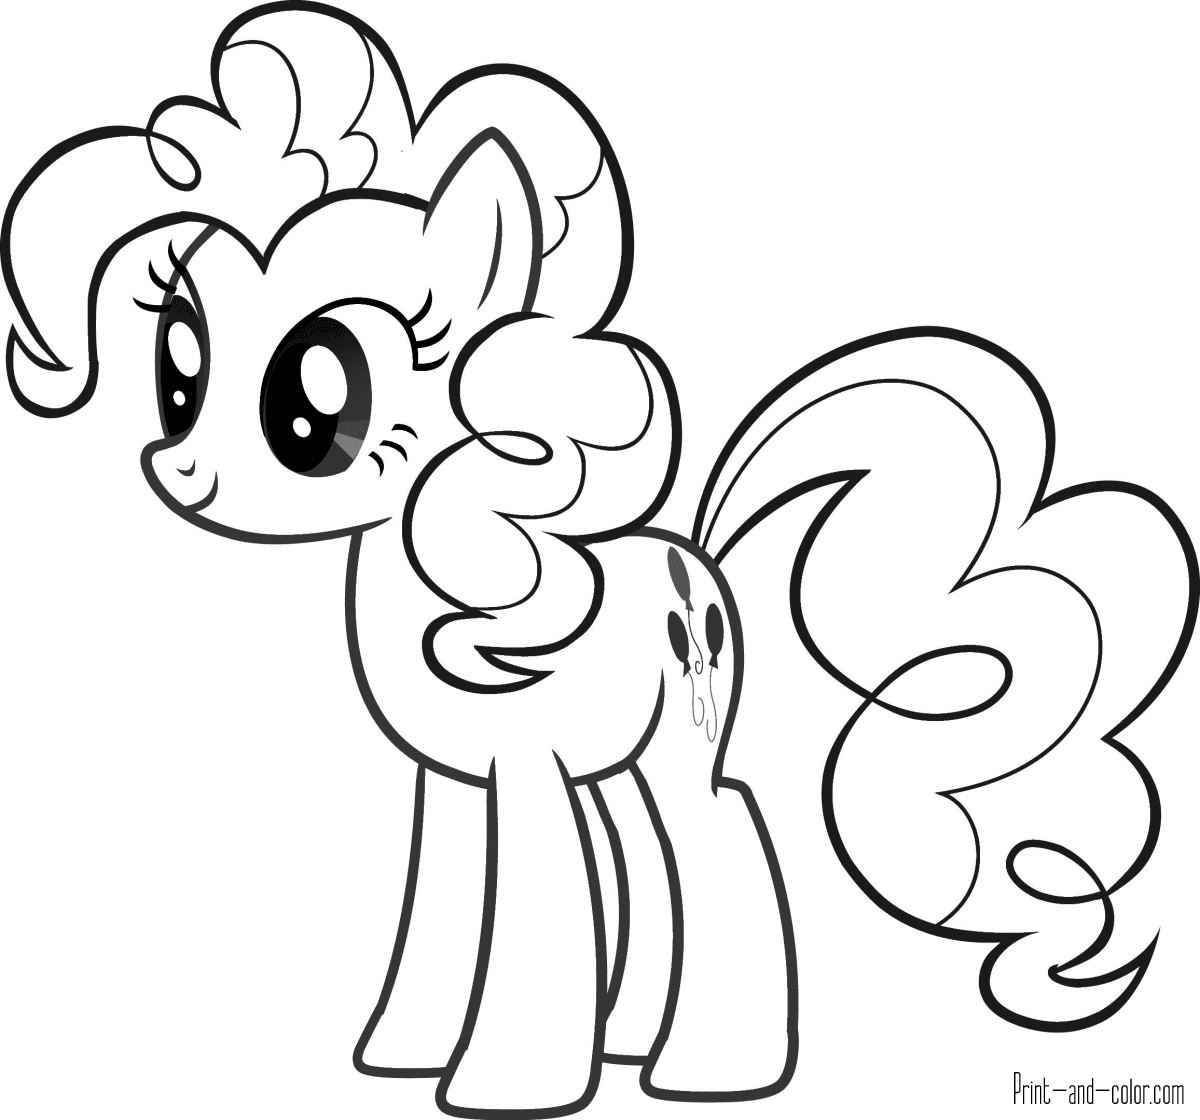 98 Top My Little Pony Coloring Pages A4 Images & Pictures In HD